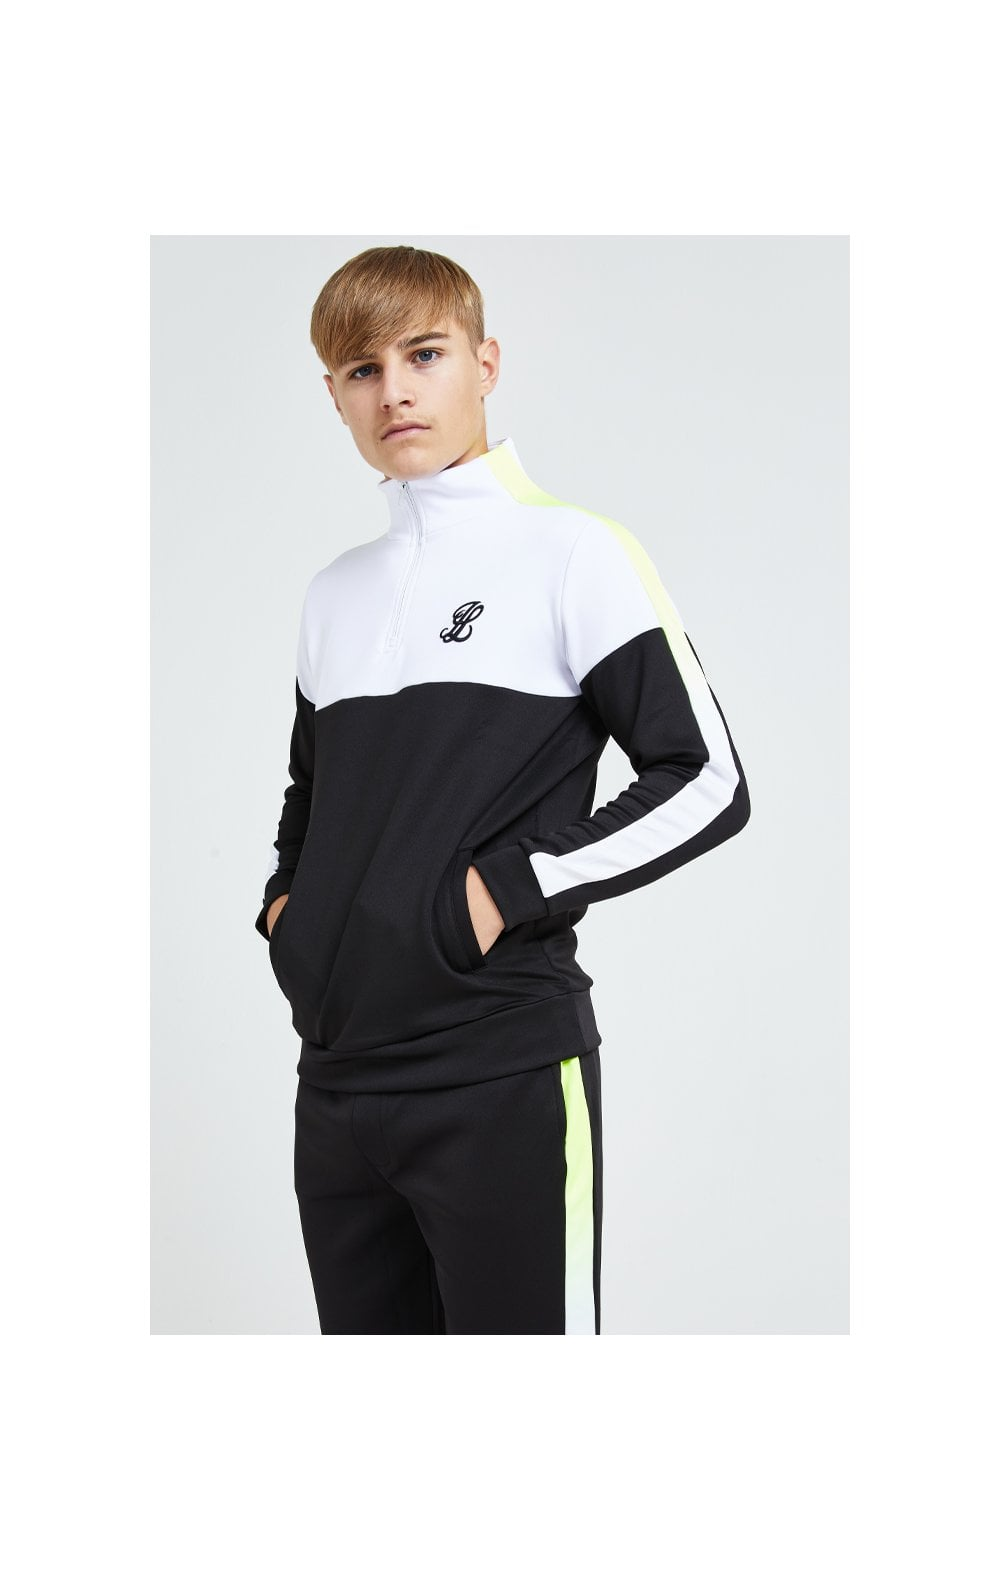 Illusive London Fade Funnel Neck Hoodie - Black,White & Neon Yellow